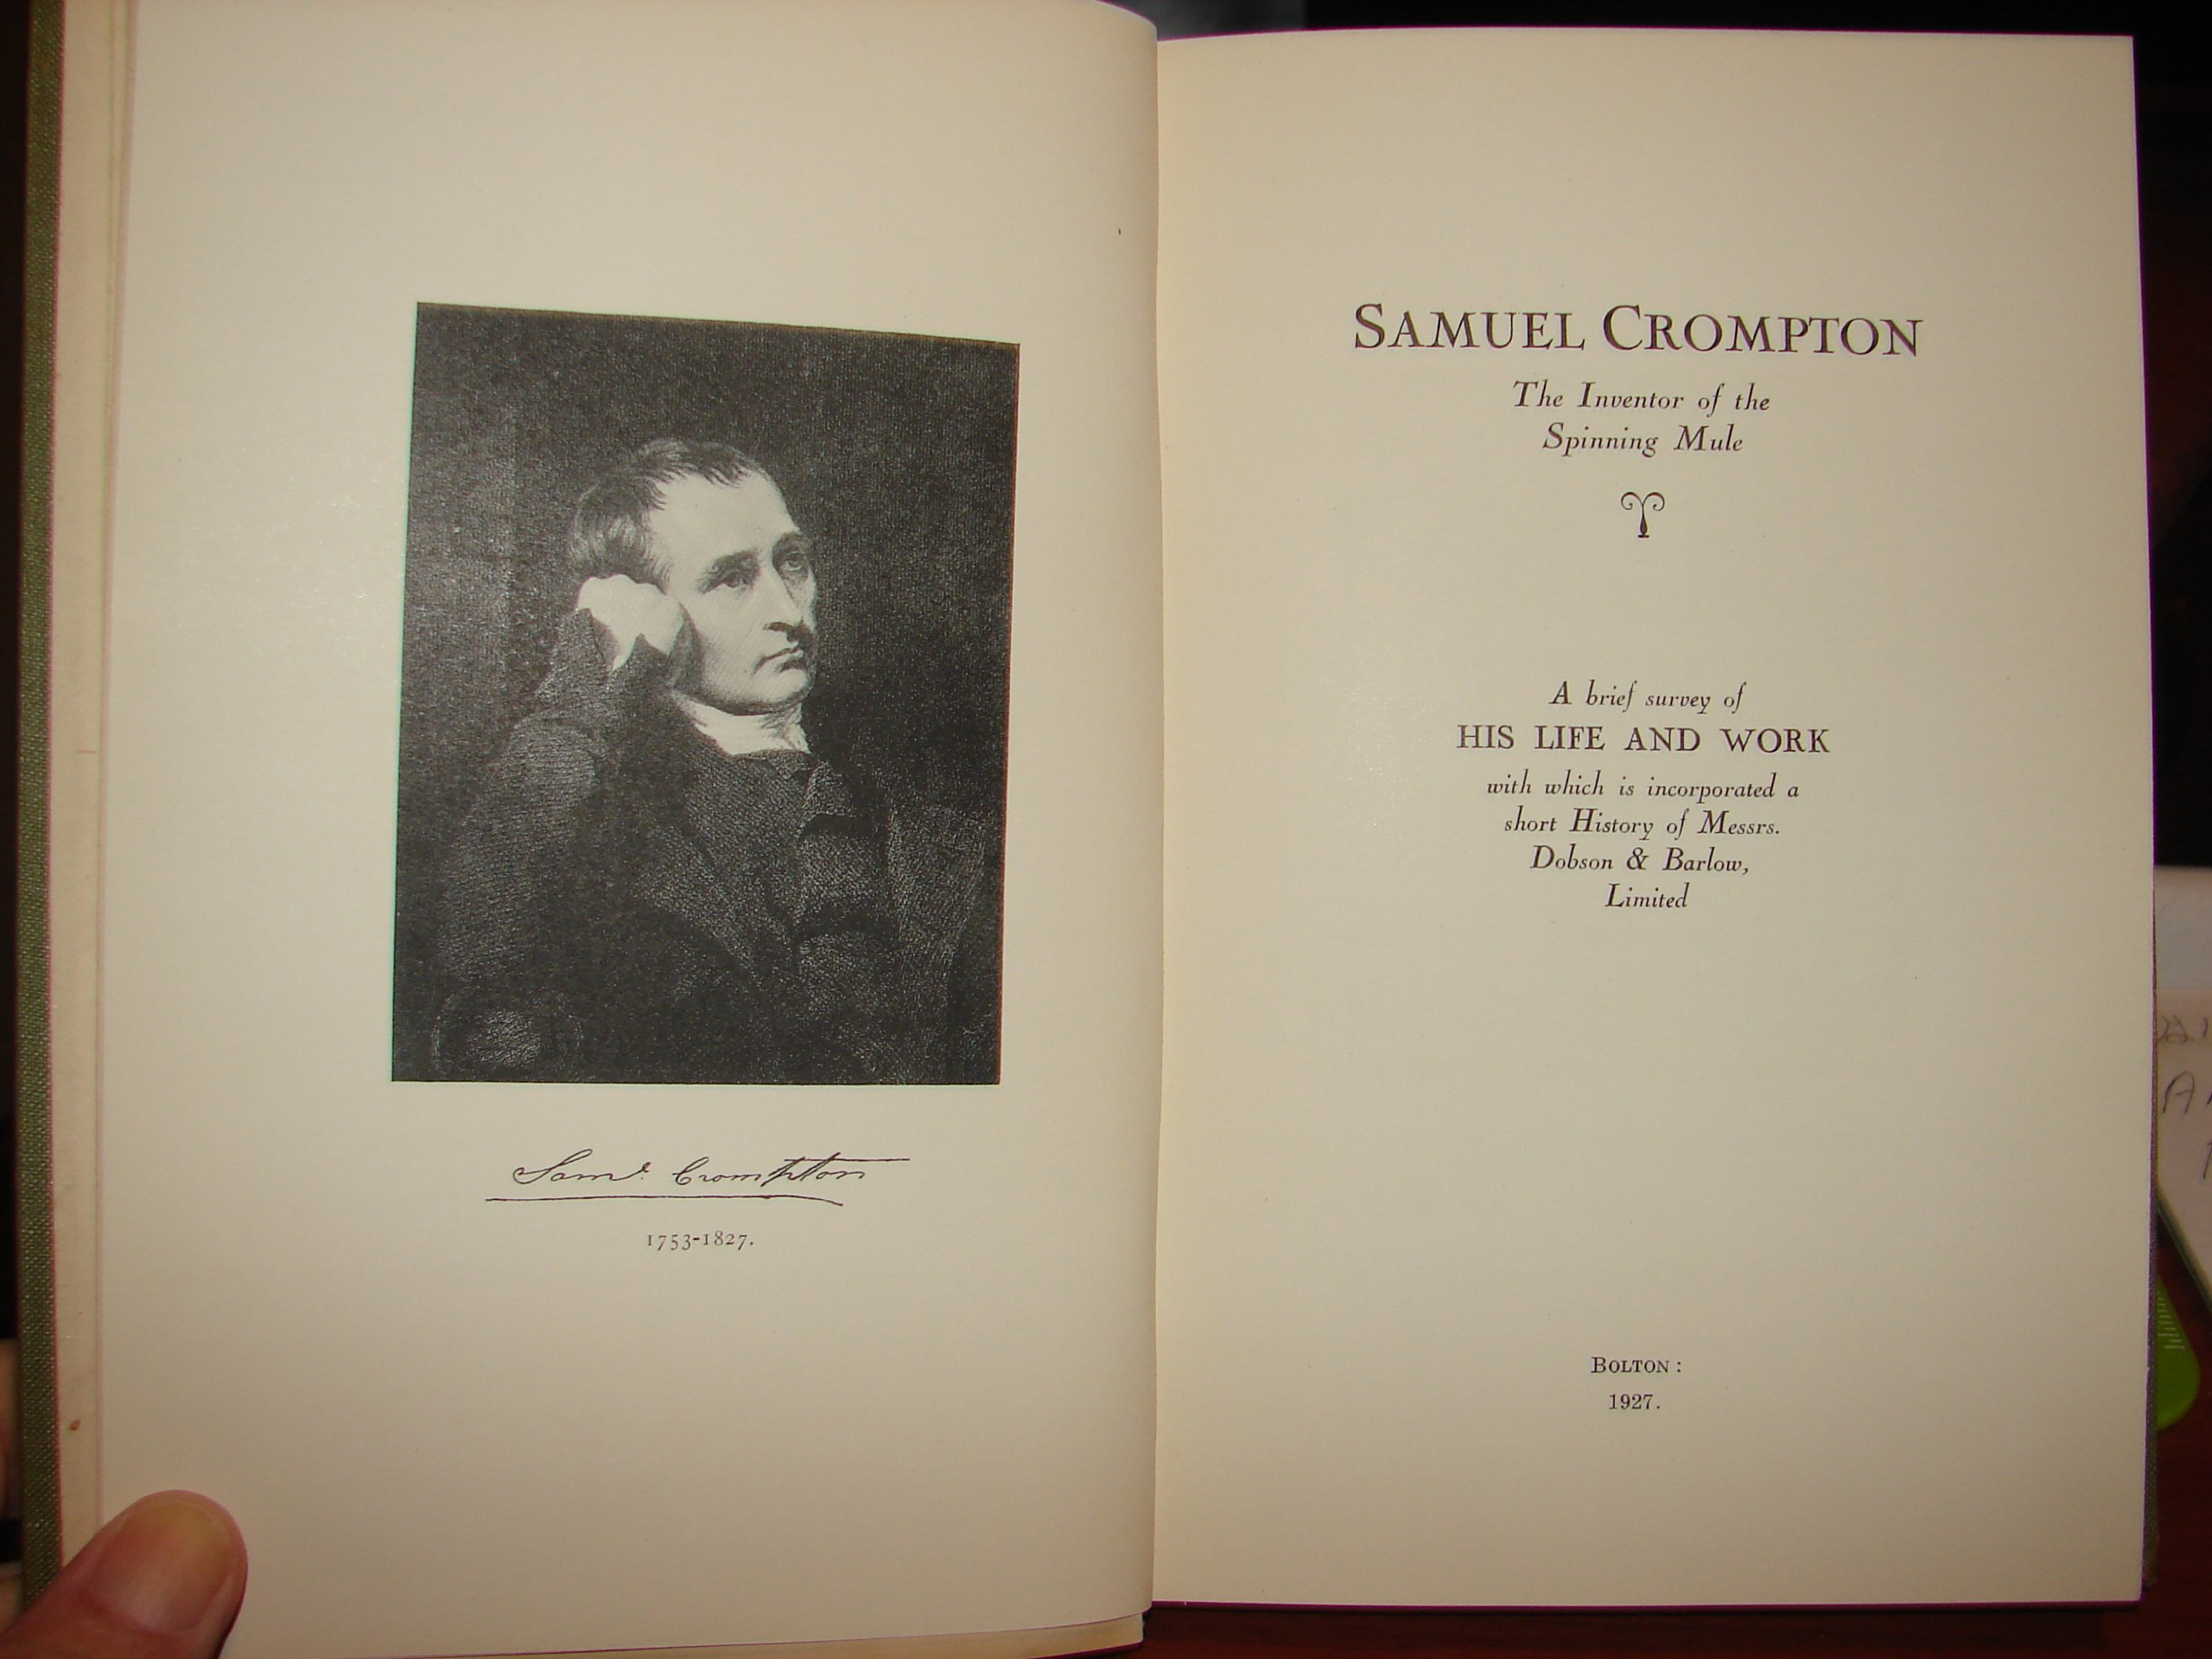 SAMUEL CROMPTON, THE INVENTOR OF THE SPINNING MULE: A BRIEF SURVEY ...